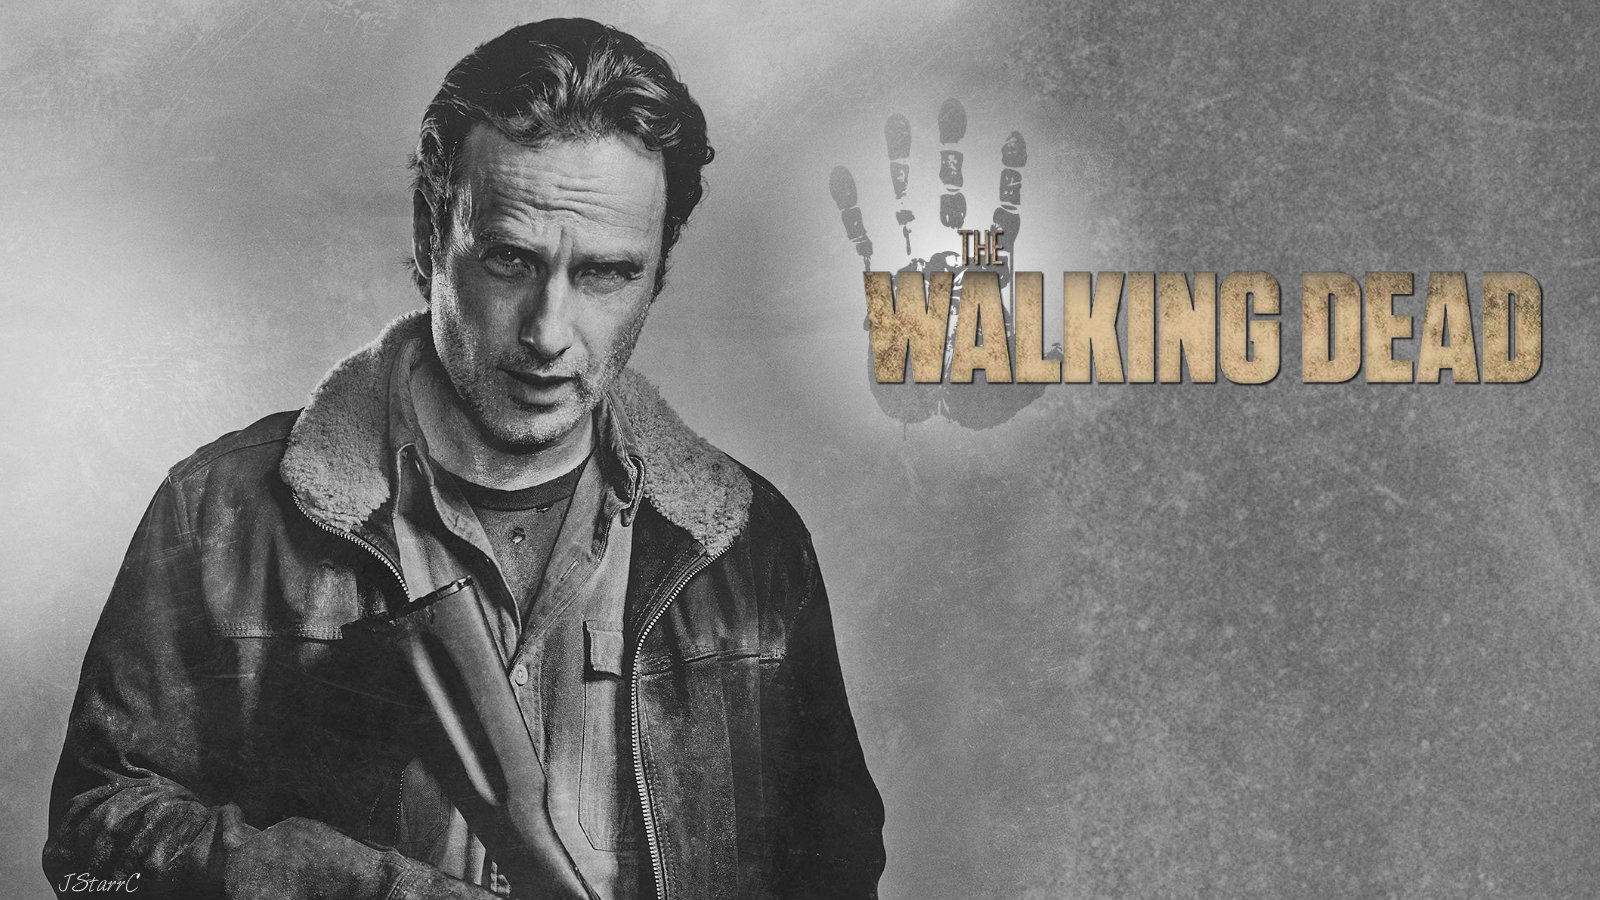 The Walking Dead Images Rick Grimes HD Wallpaper And Background Photos